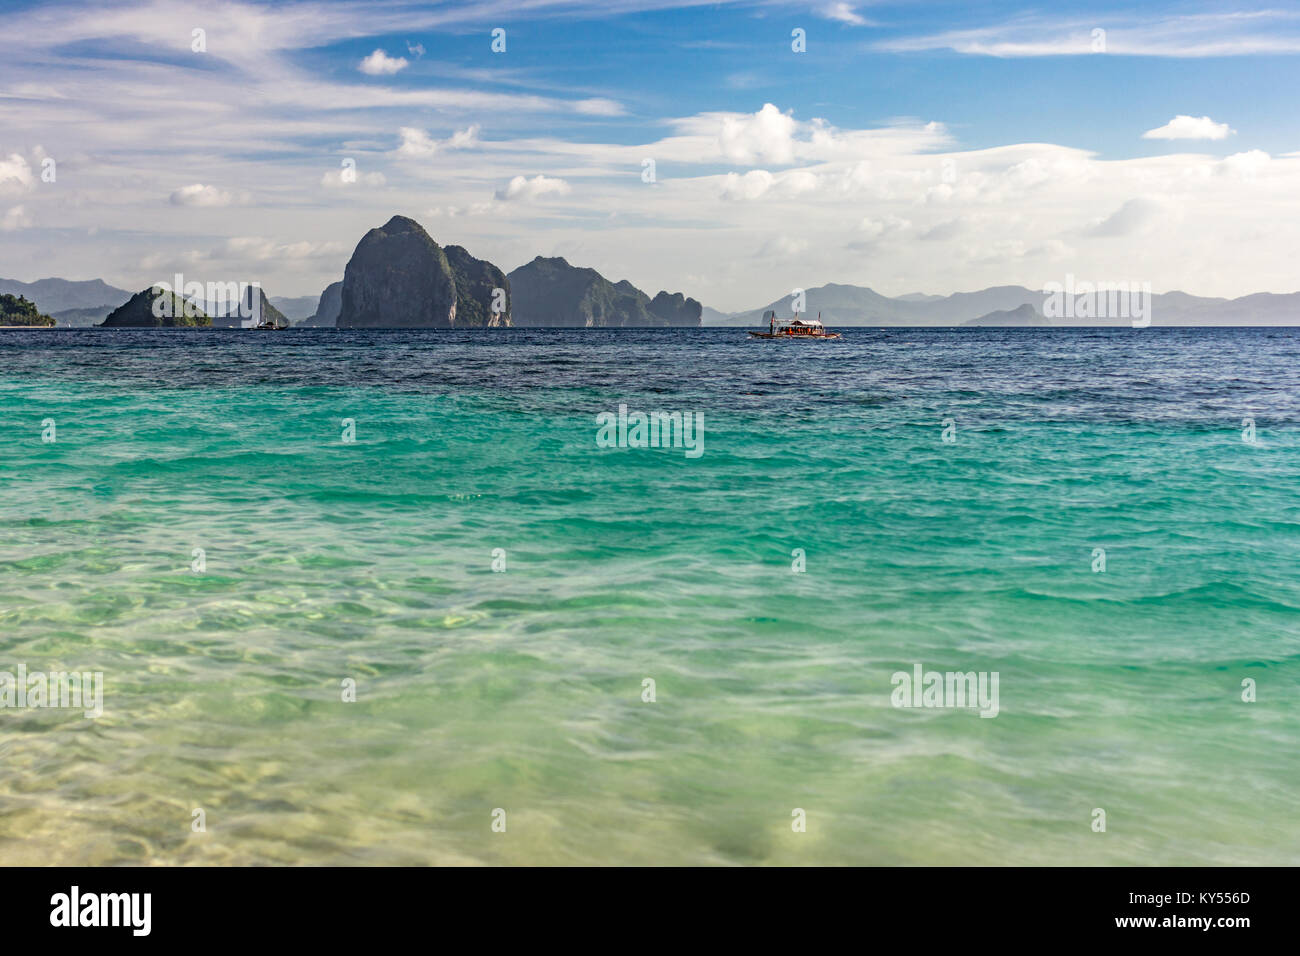 Small islands sat on the horizon taken at a low angle over an empty calm tropical sea  with depth of field. - Stock Image